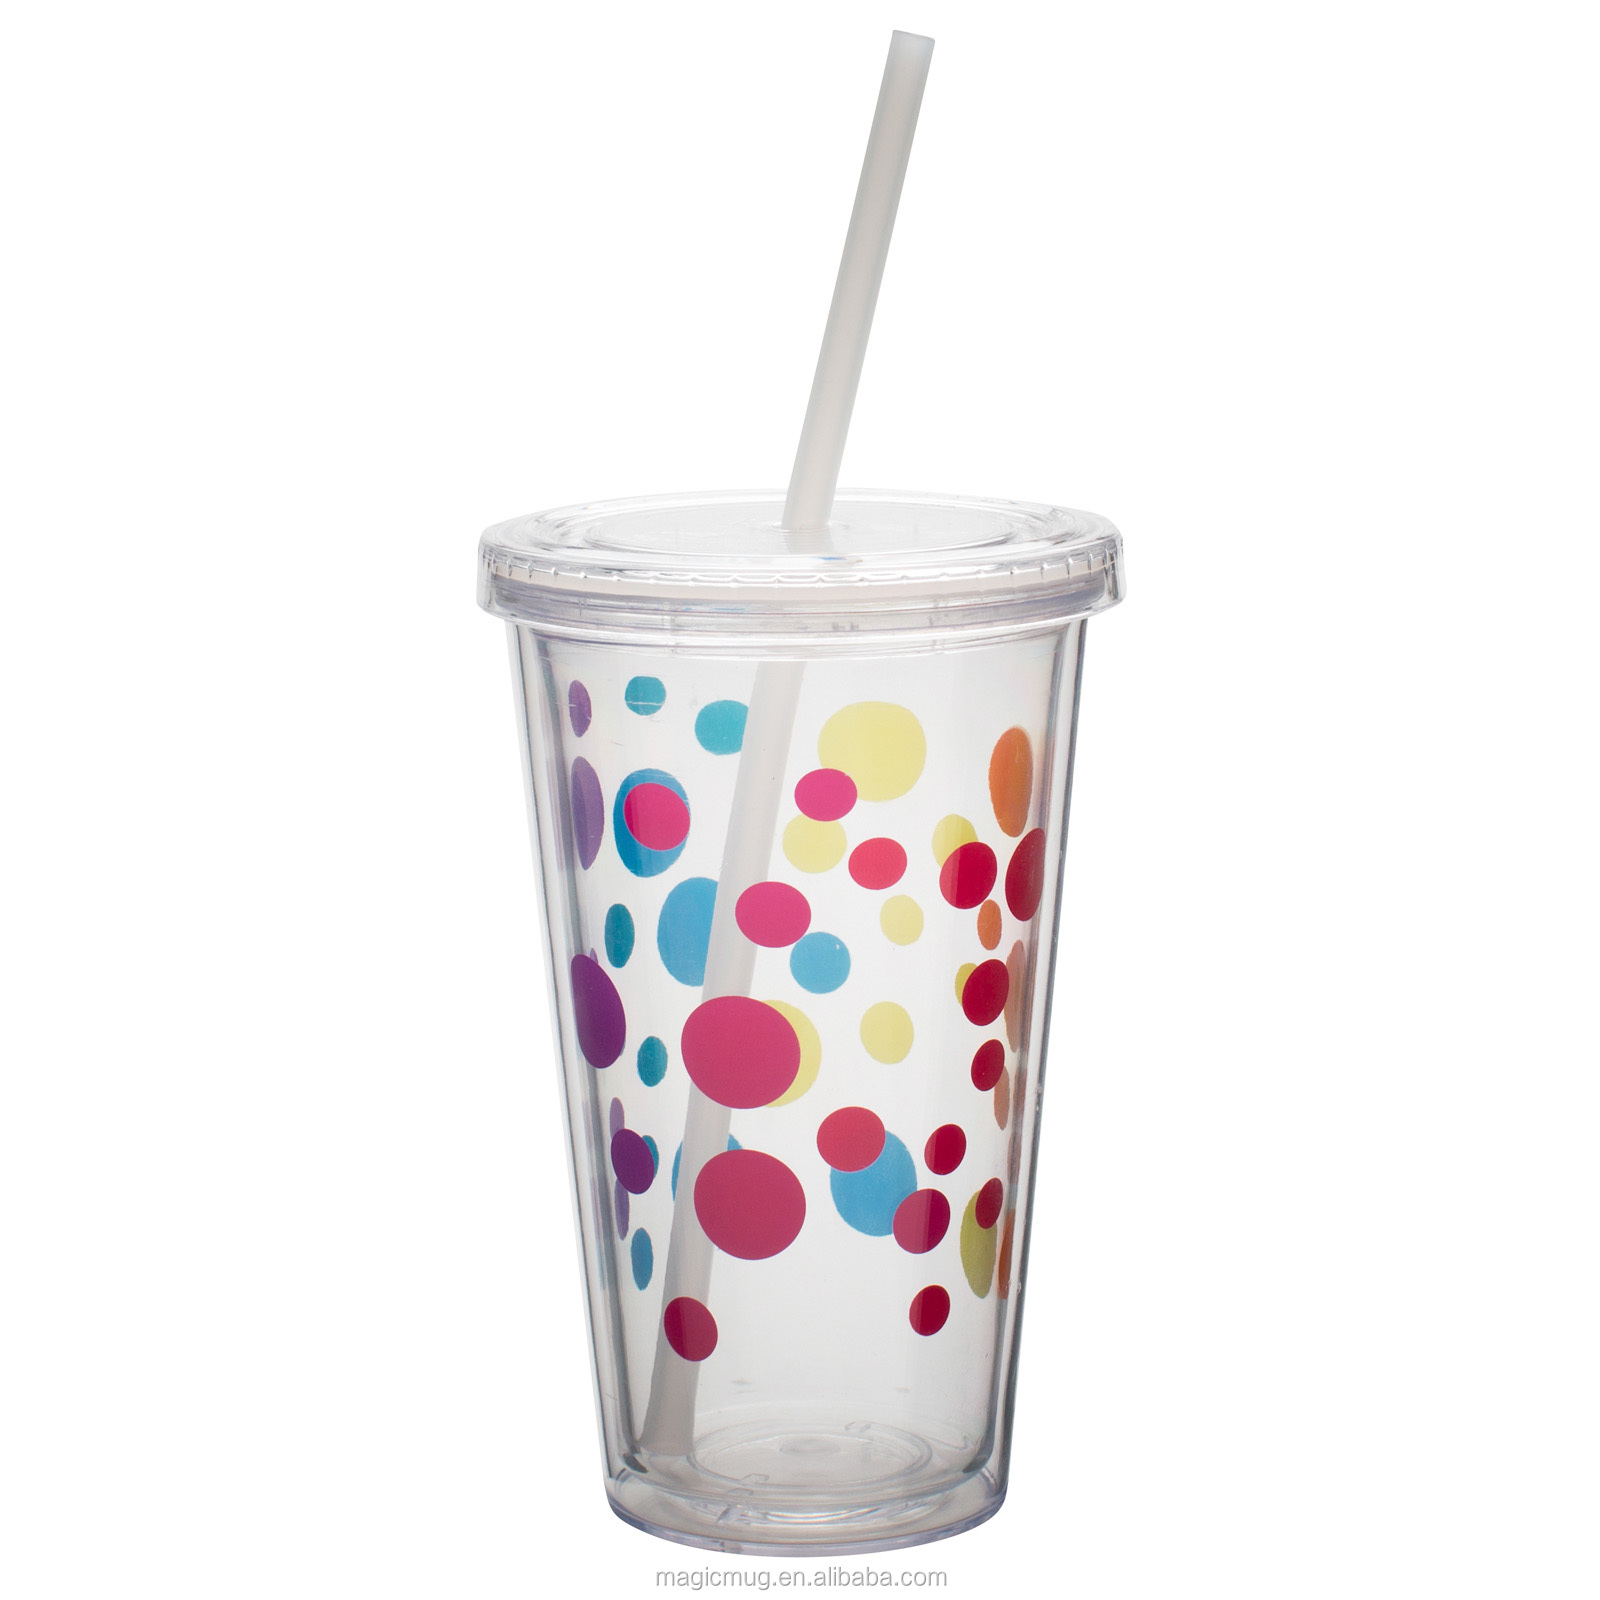 Insulated Plastic Drink Cup Glass With Curly Crazy Straw